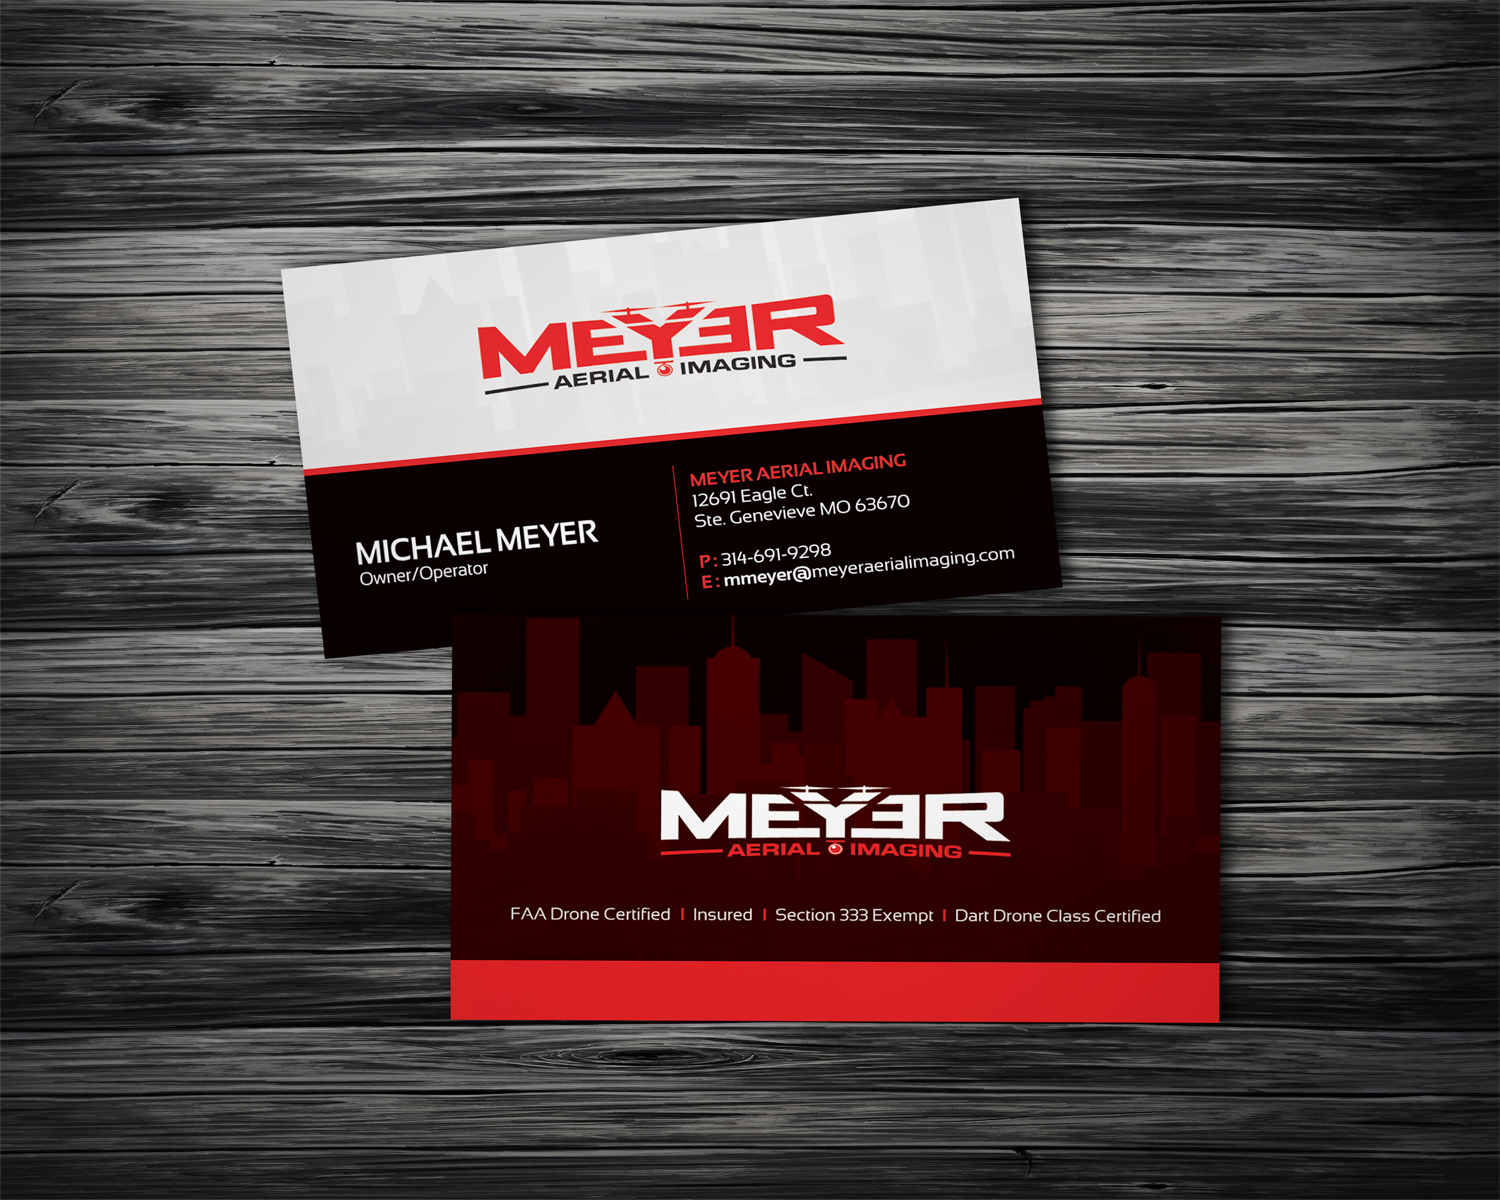 68 serious business card designs business business card design business card design by dirtyemm for meyer aerial imaging design 9689404 reheart Images